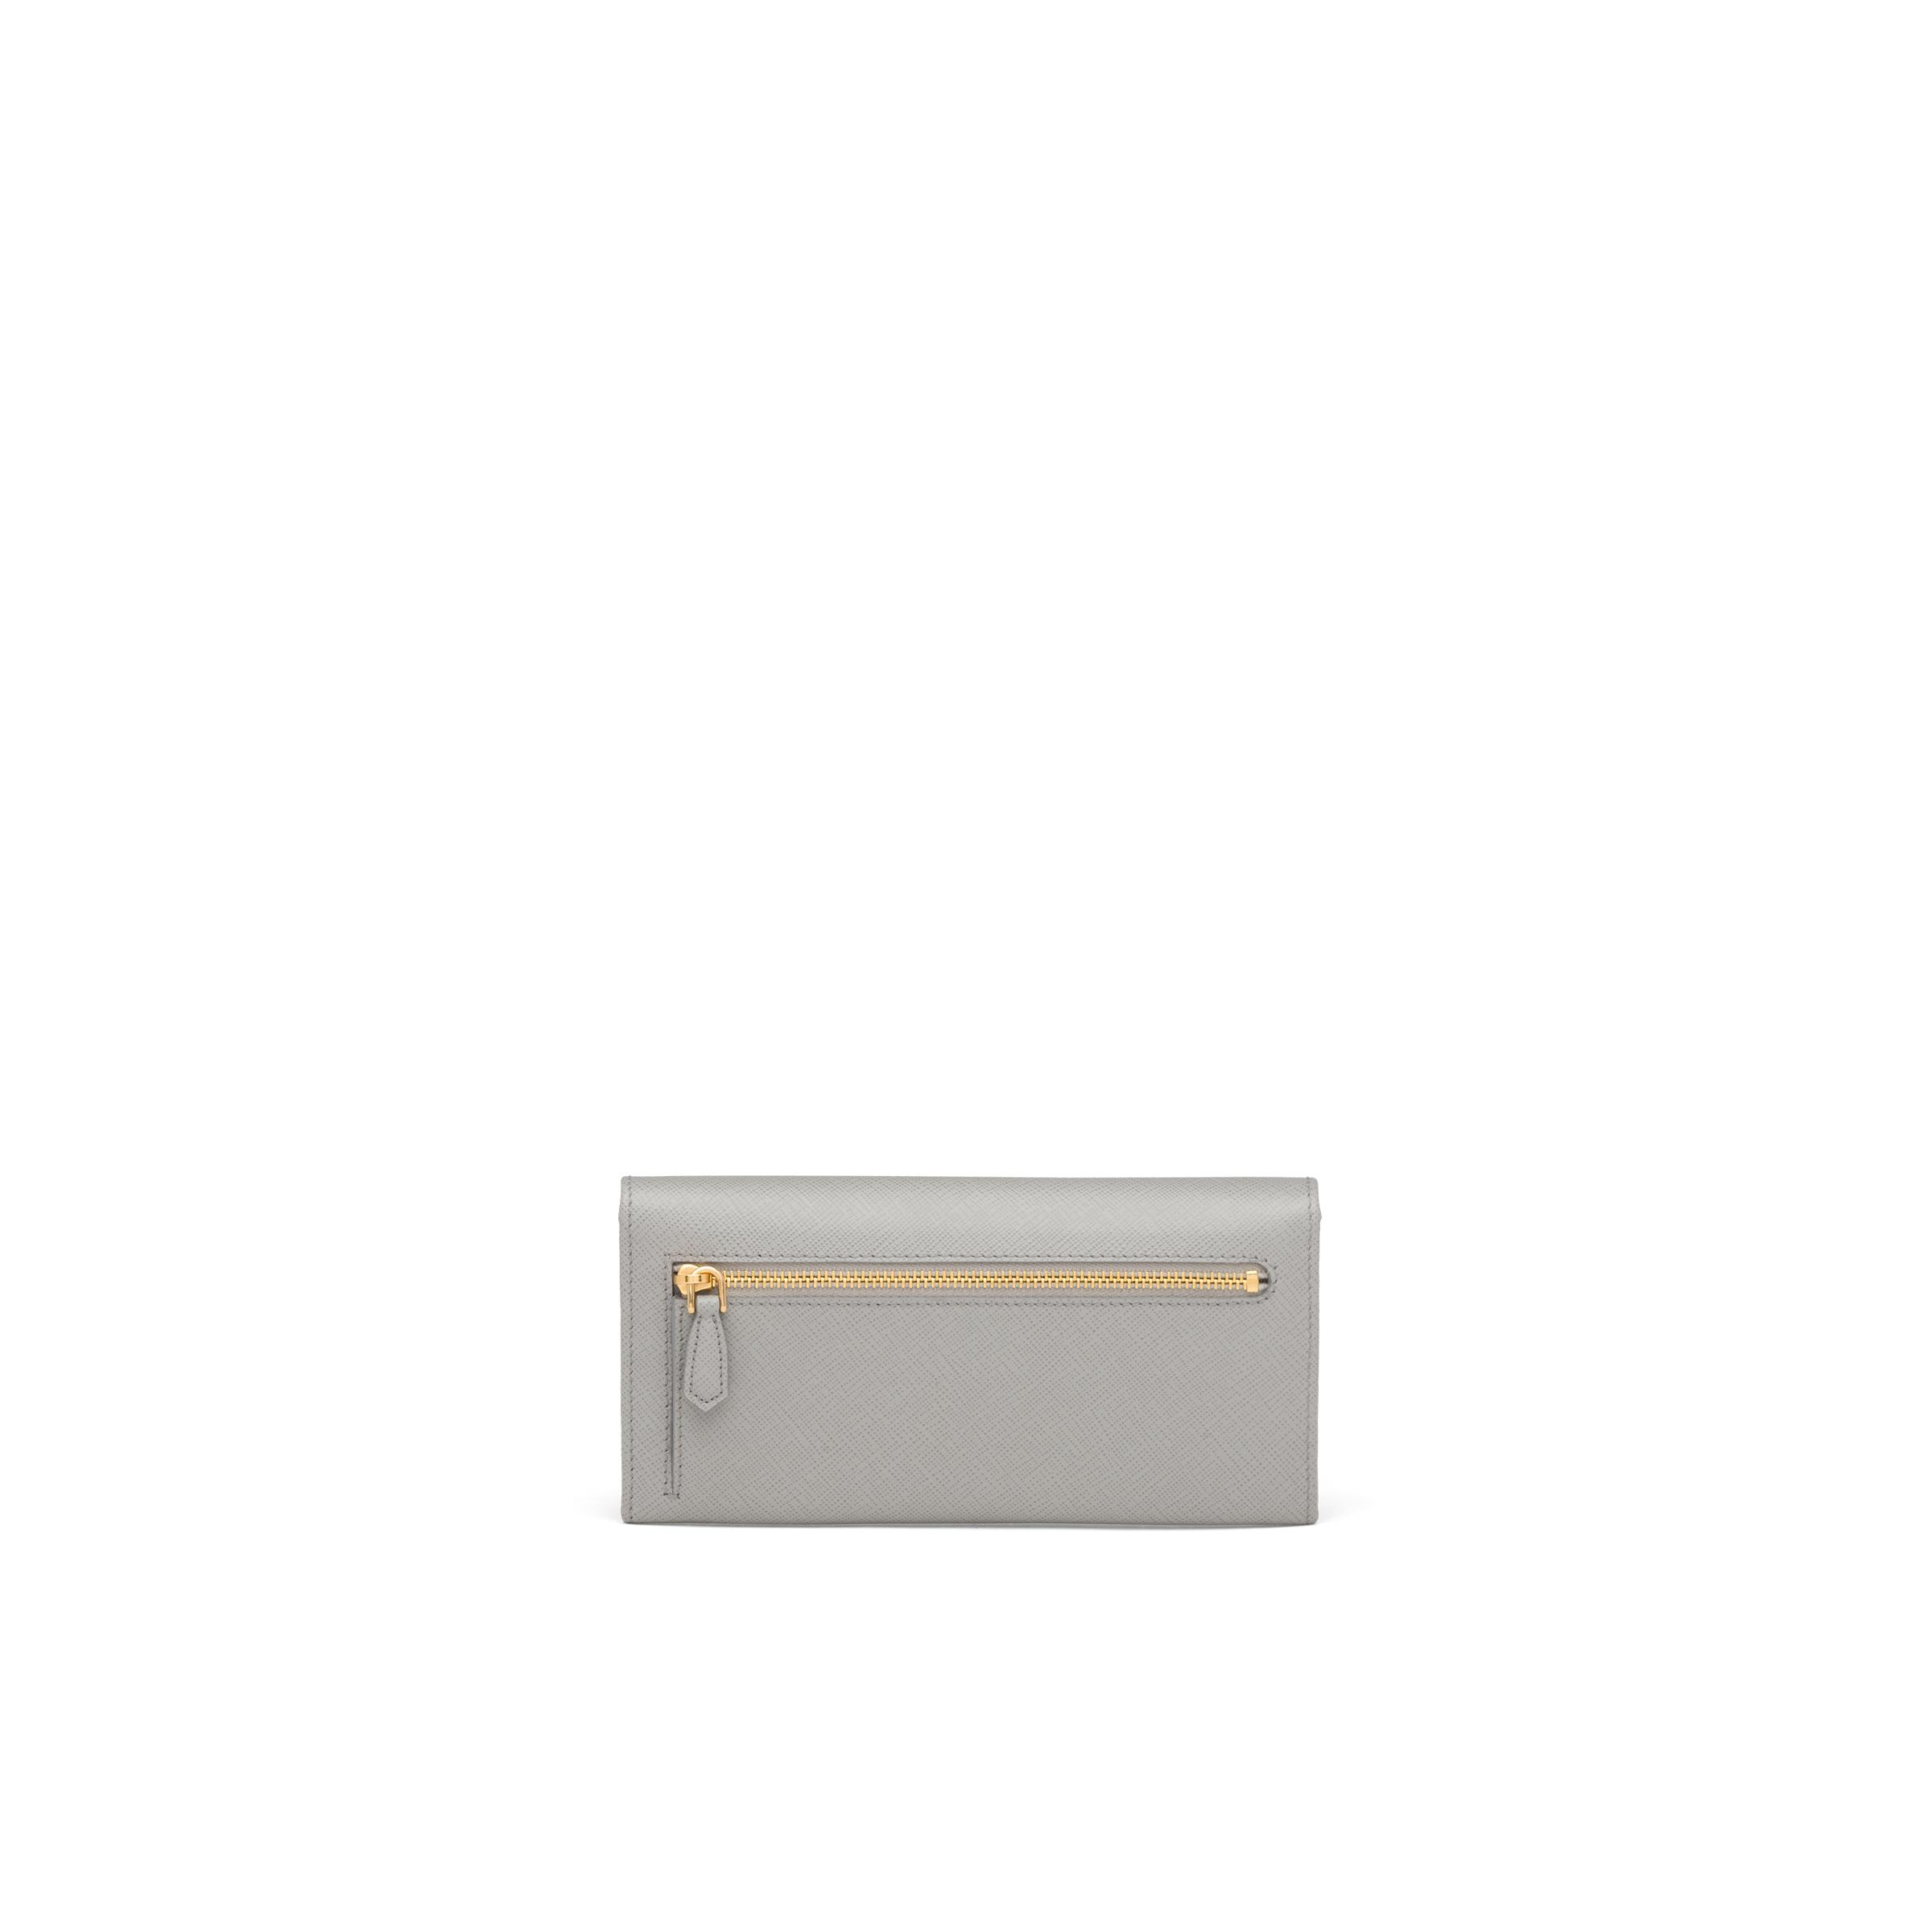 Large Saffiano Leather Wallet Women Cloudy Gray/marble Gray 4